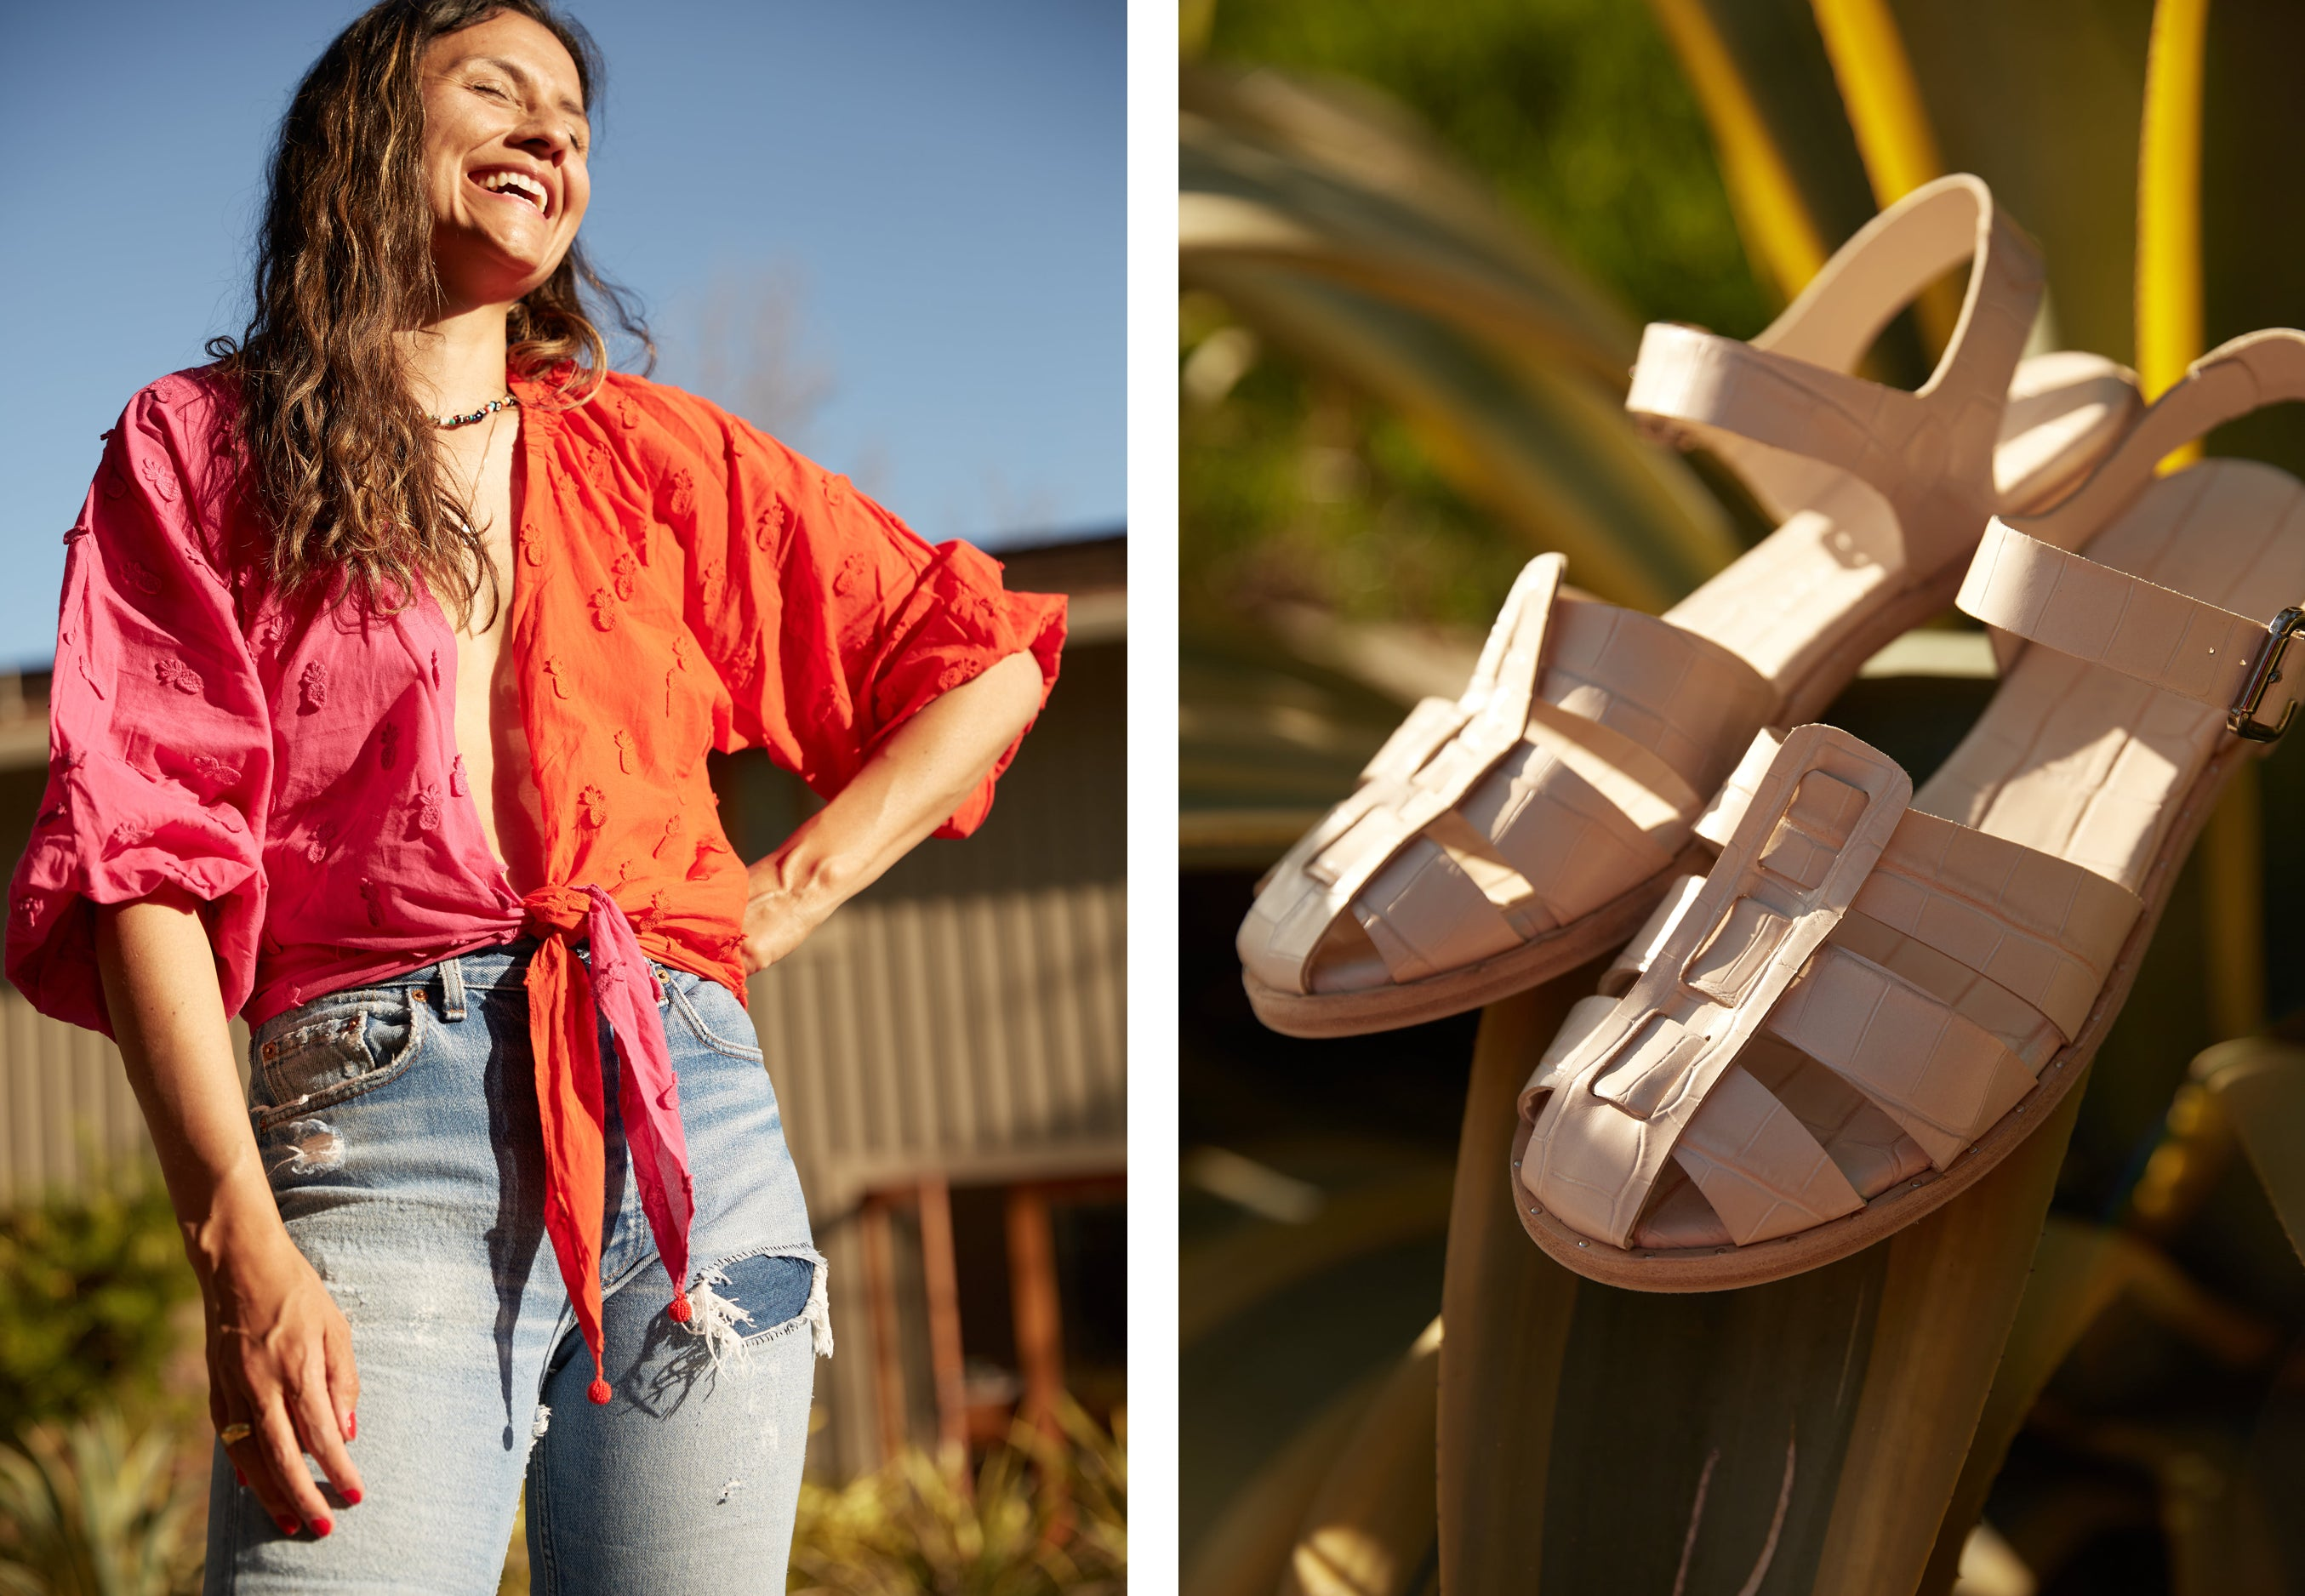 Photographer and Frēda Woman Pricilla Gragg shot at her home in the SERA sandal - her go-to pick for Spring!